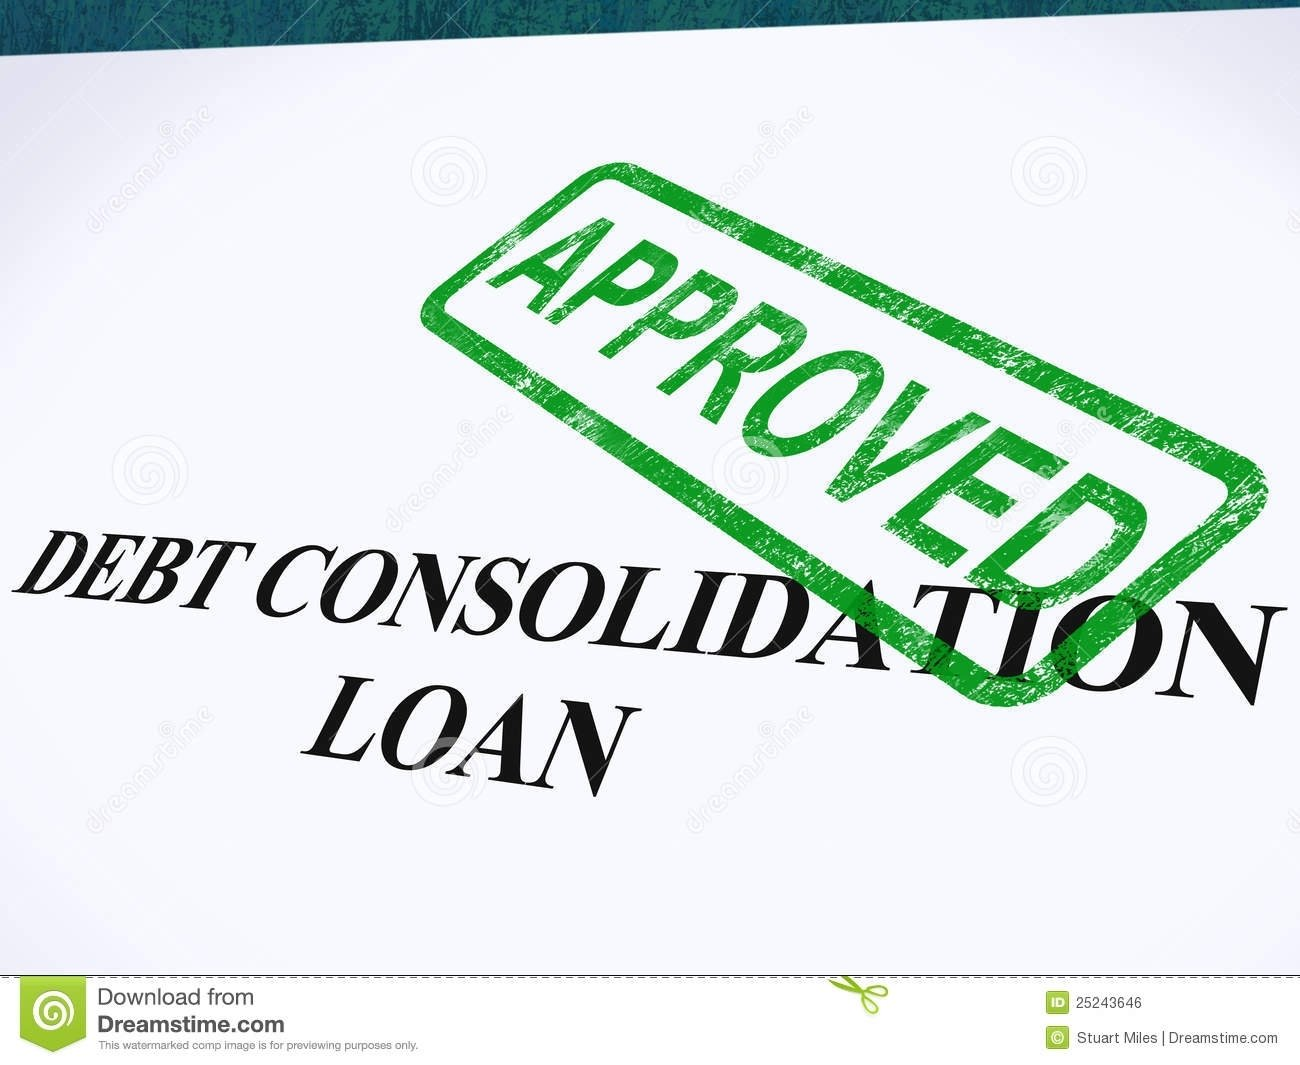 debt consolidation loan approved stock photo - image of borrower